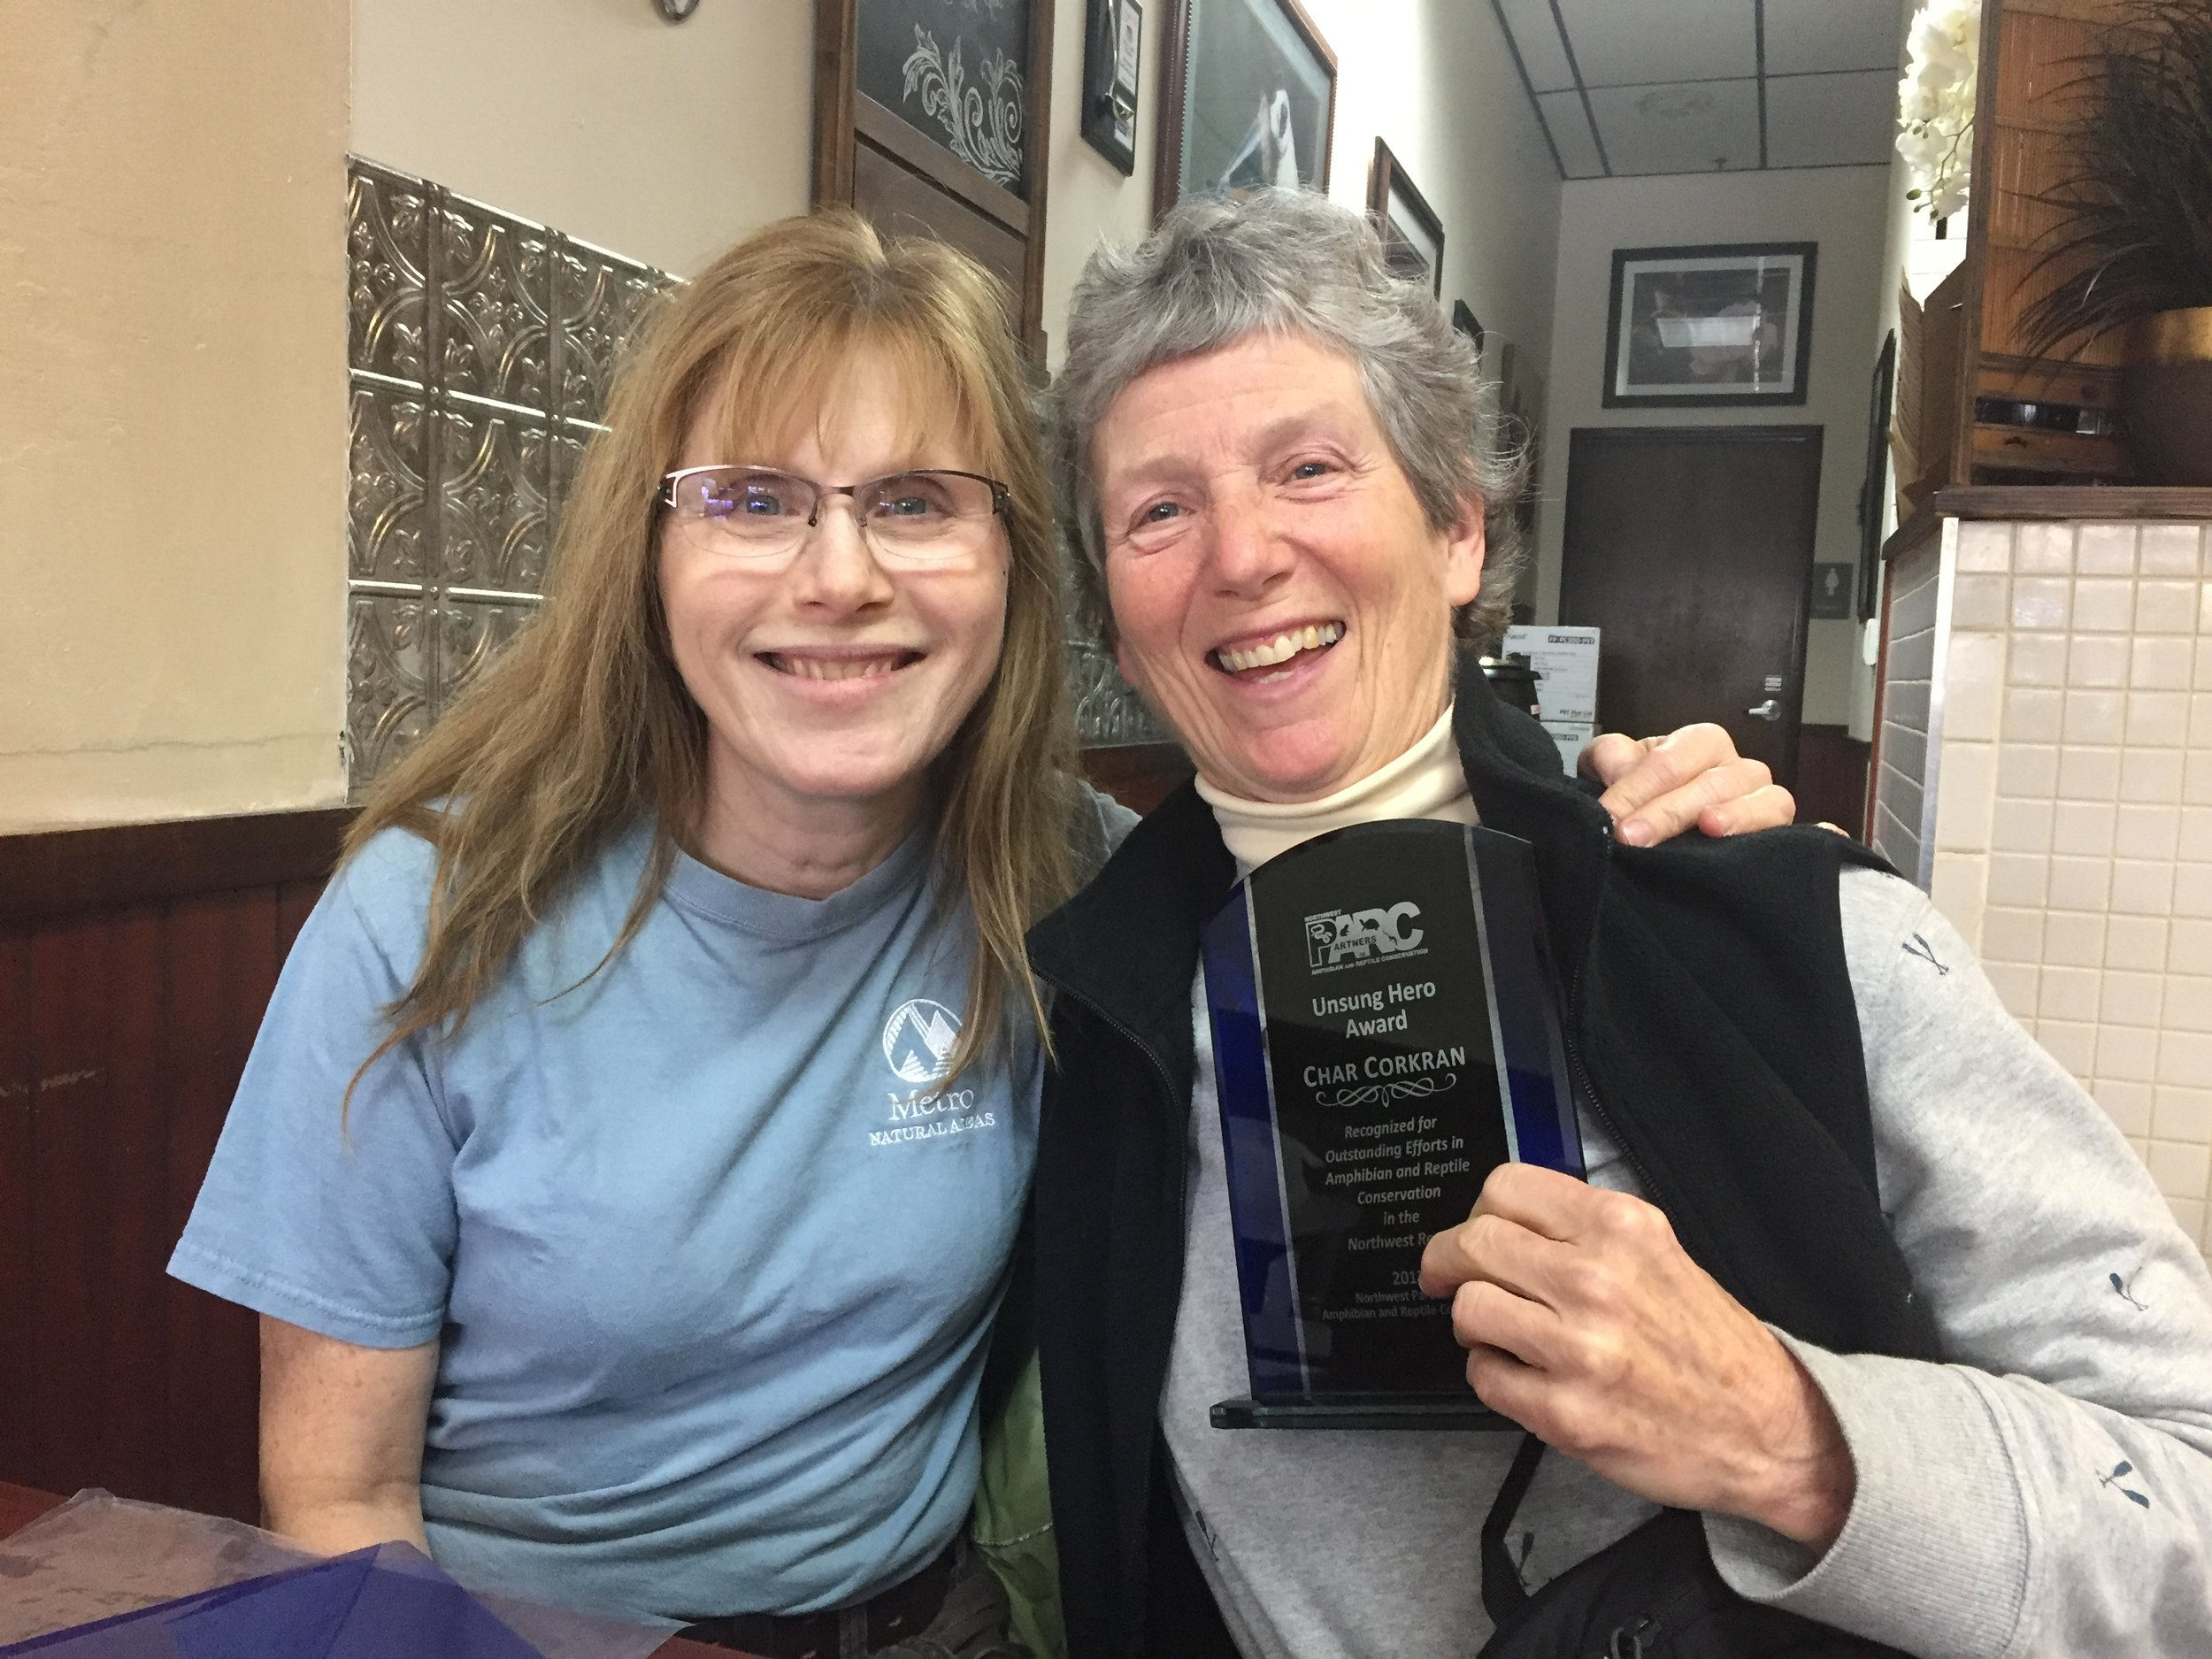 NW PARC co-chair Katy Weil presenting Char Corkran with her award